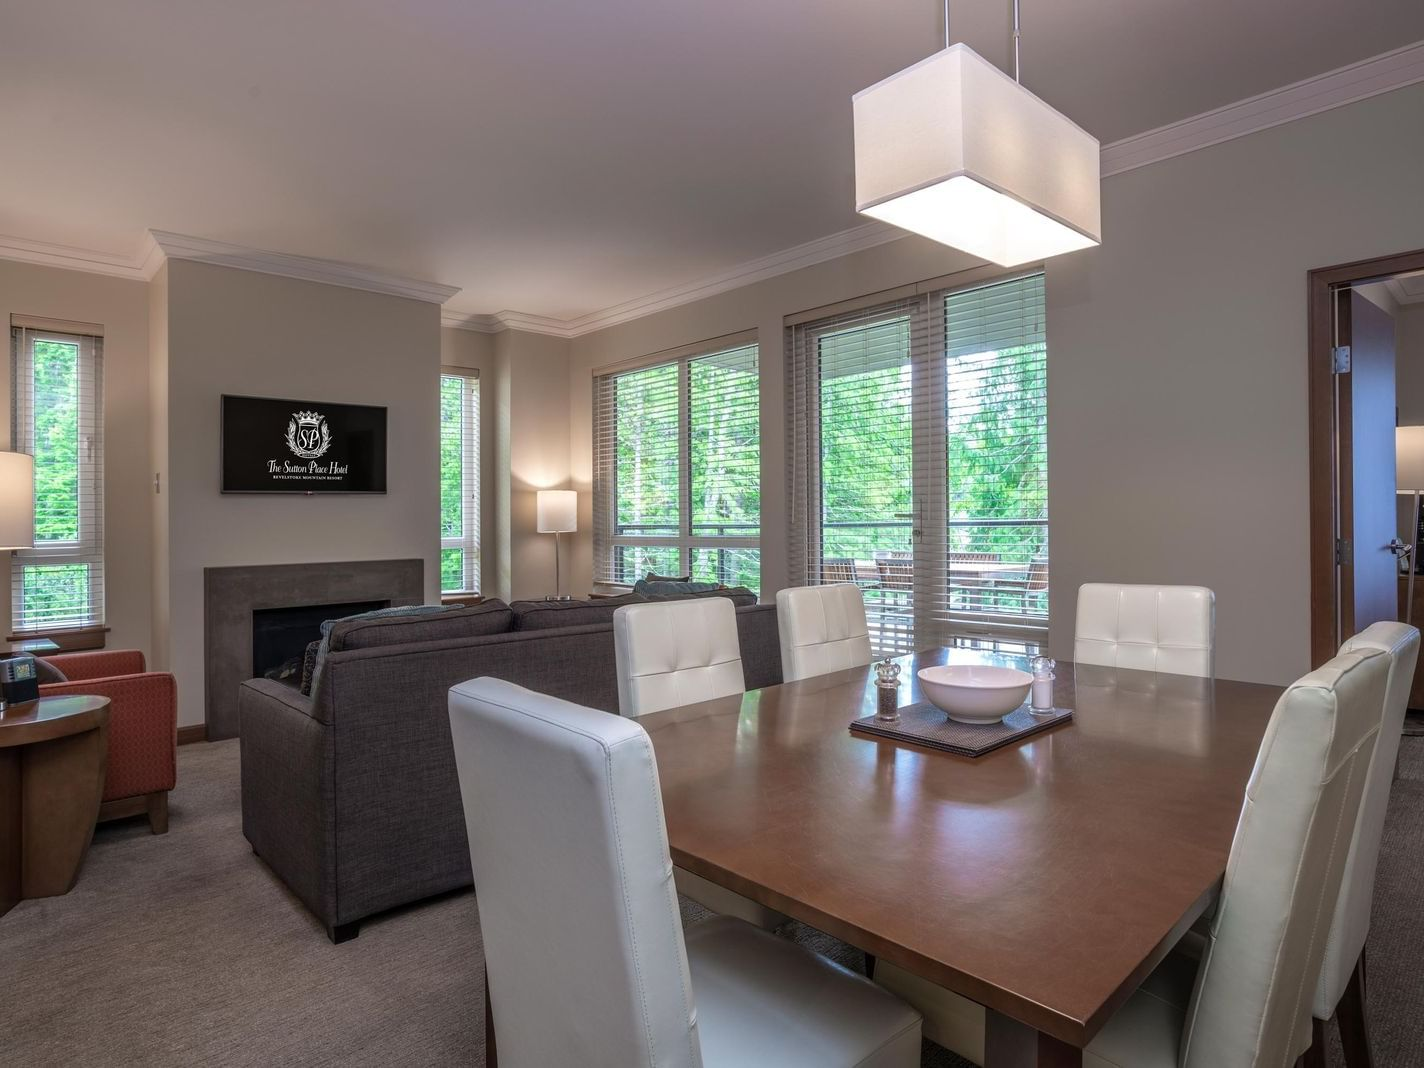 Three Bedroom Suite The Sutton Place Hotel Revelstoke Mountain Resort